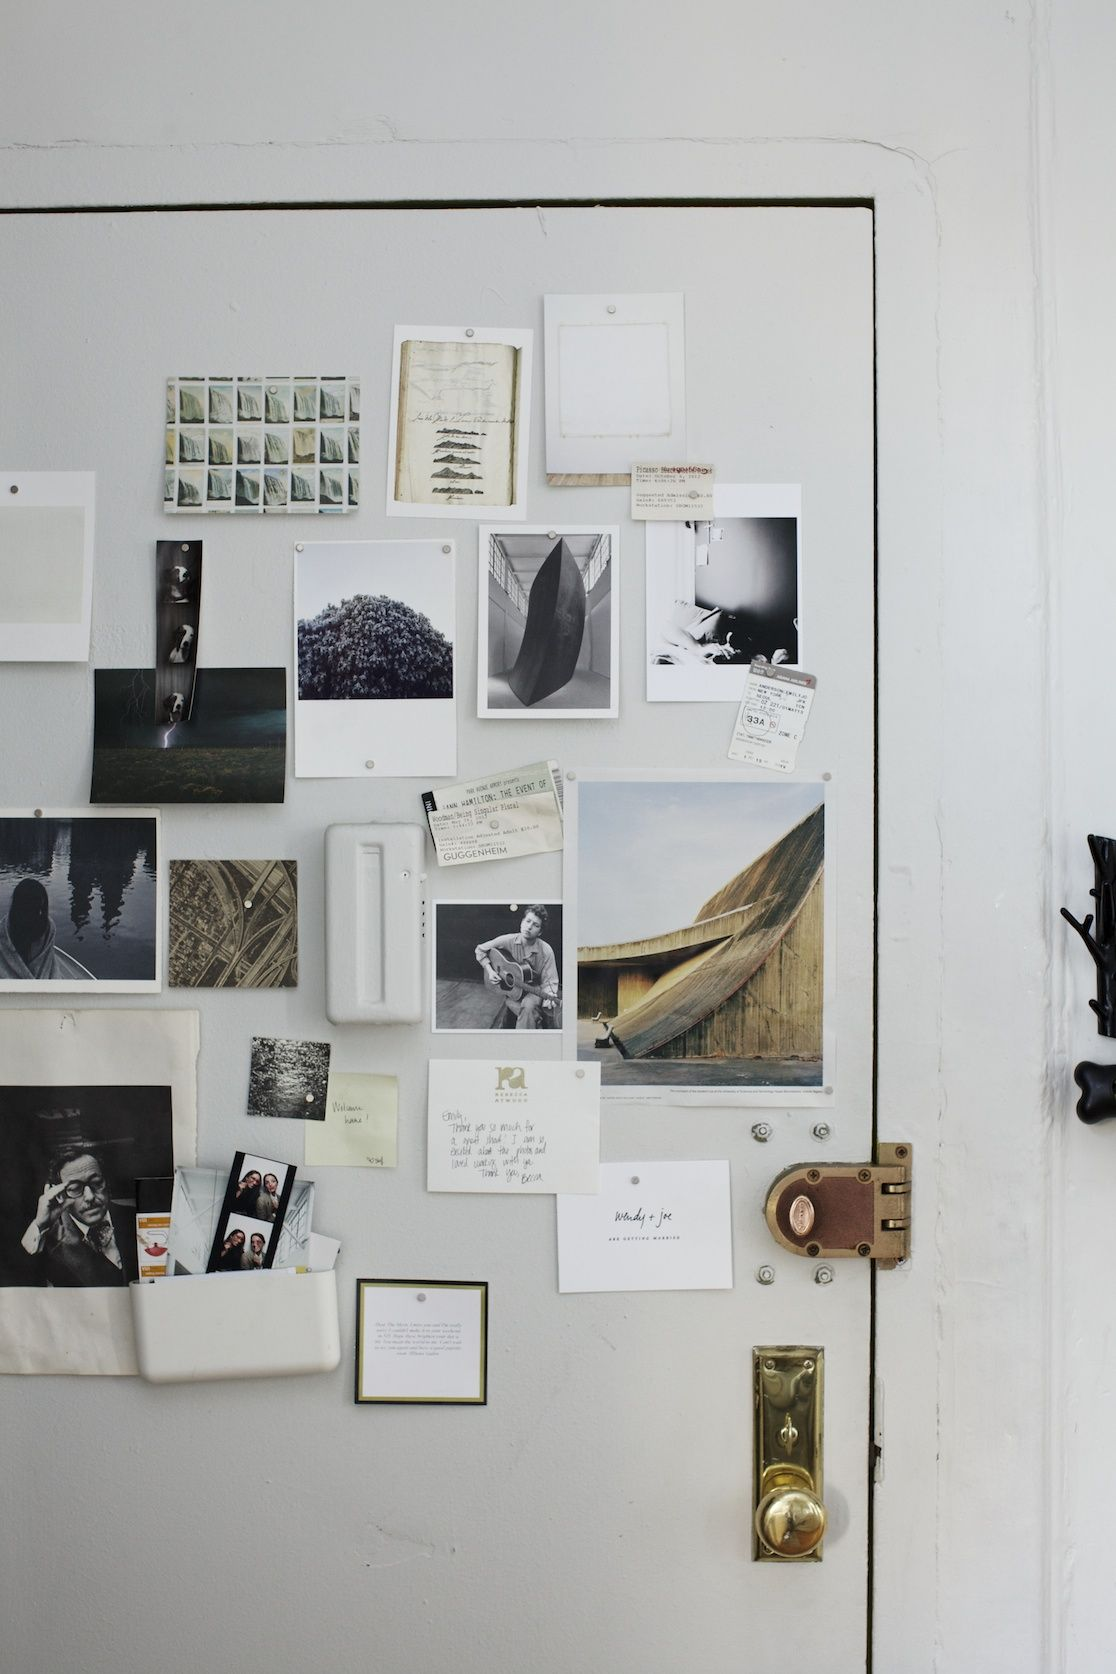 The realities behind being a photographer rue office space